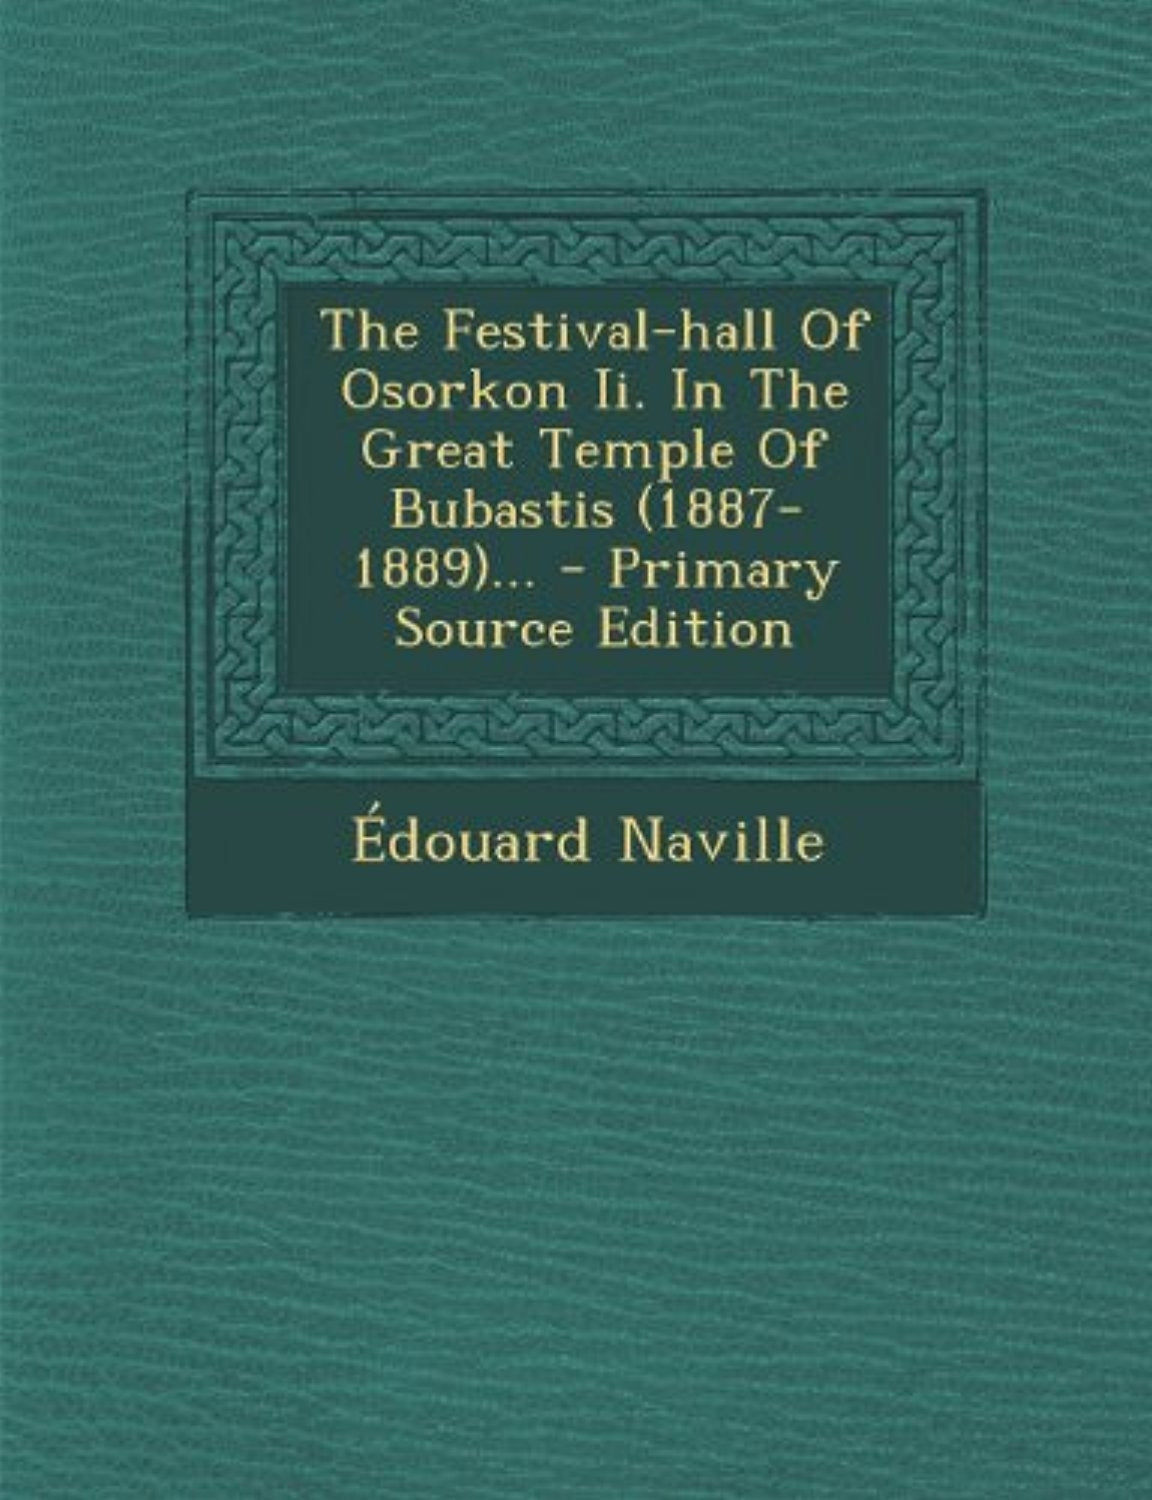 The Festival-hall Of Osorkon Ii. In The Great Temple Of Bubastis (1887-1889)... - Primary Source Edition